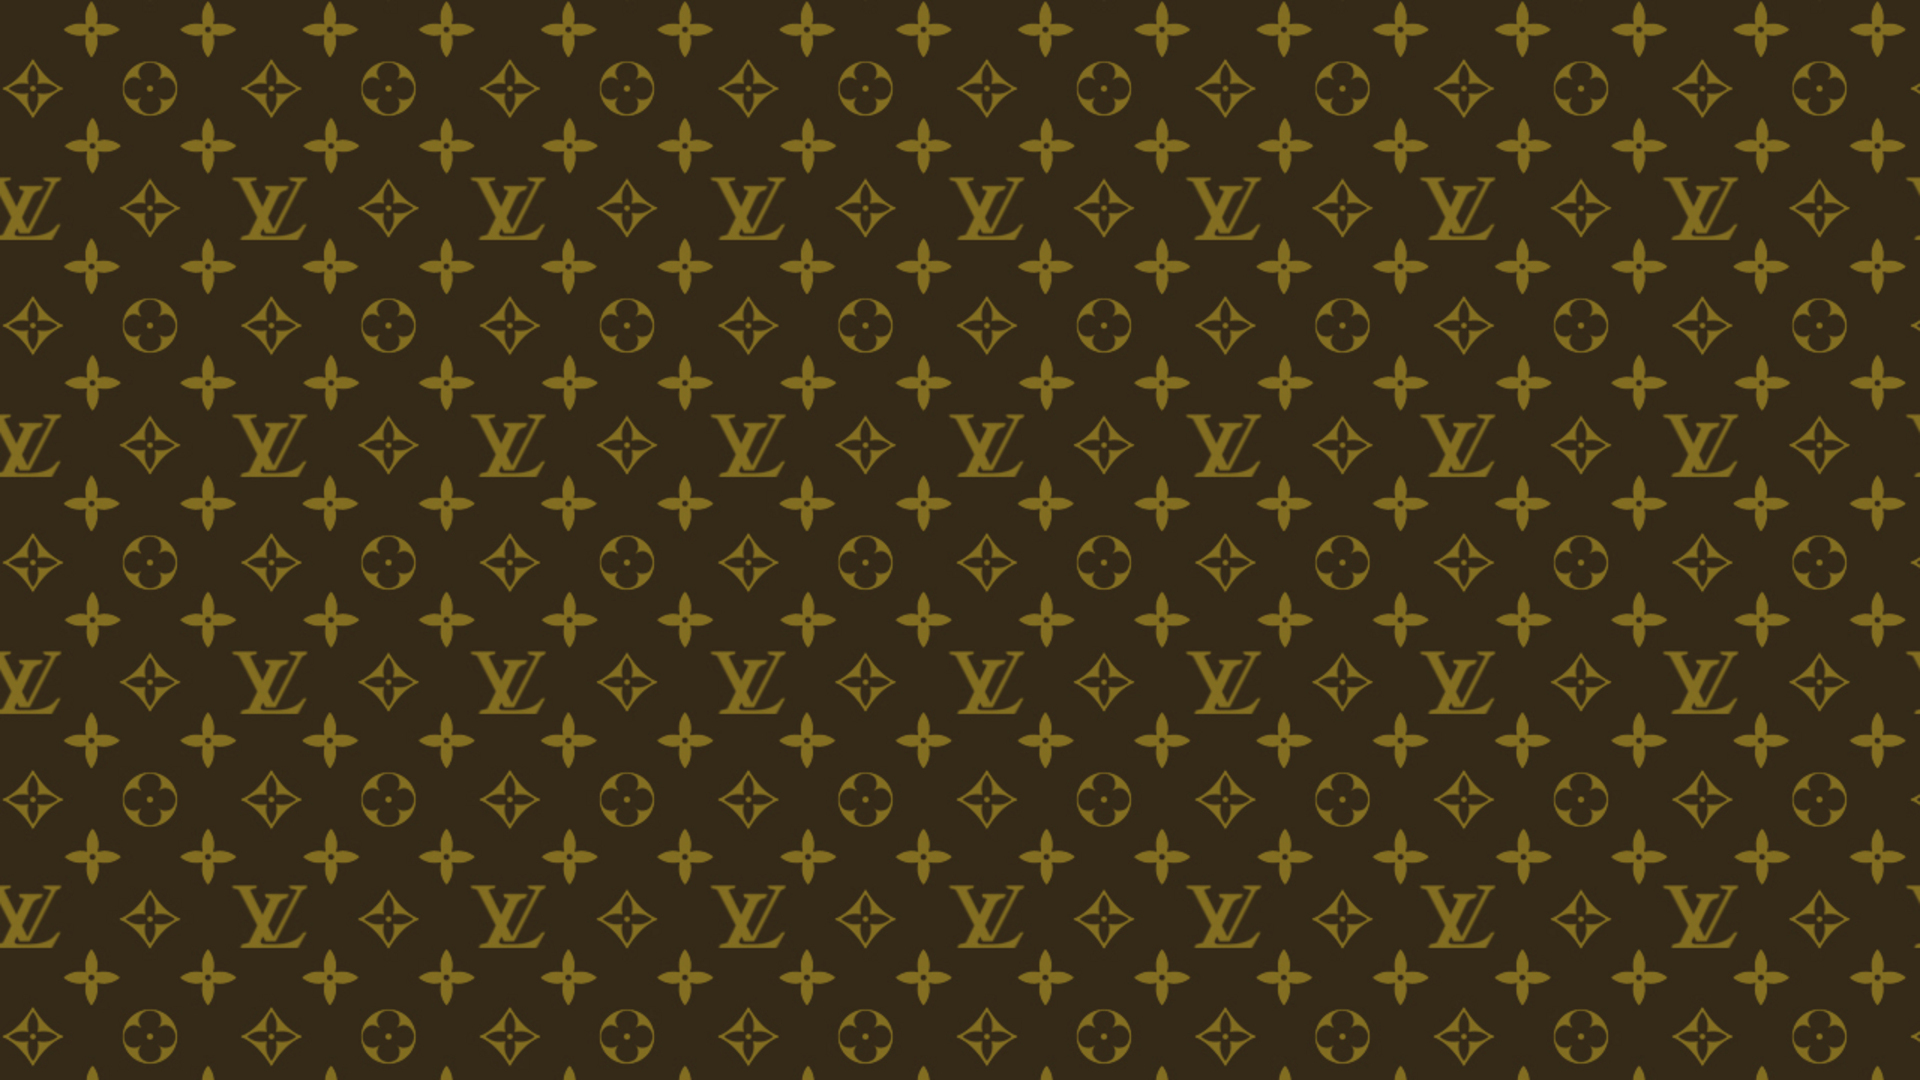 Louis vuitton wallpapers images photos pictures backgrounds louis vuitton computer wallpaper voltagebd Choice Image